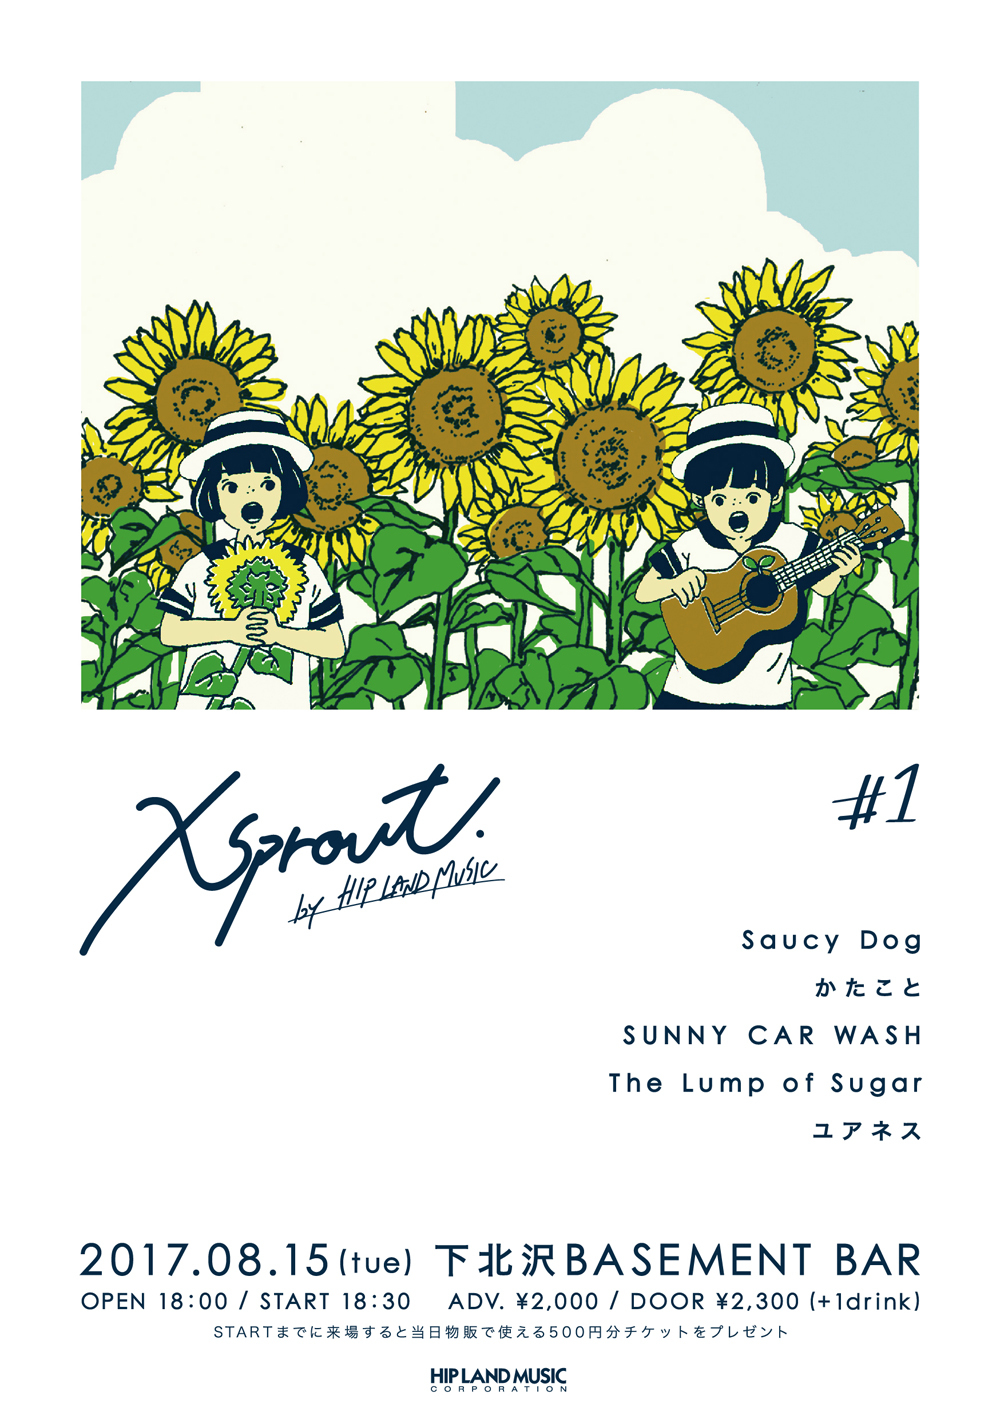 『xsprout. #1』